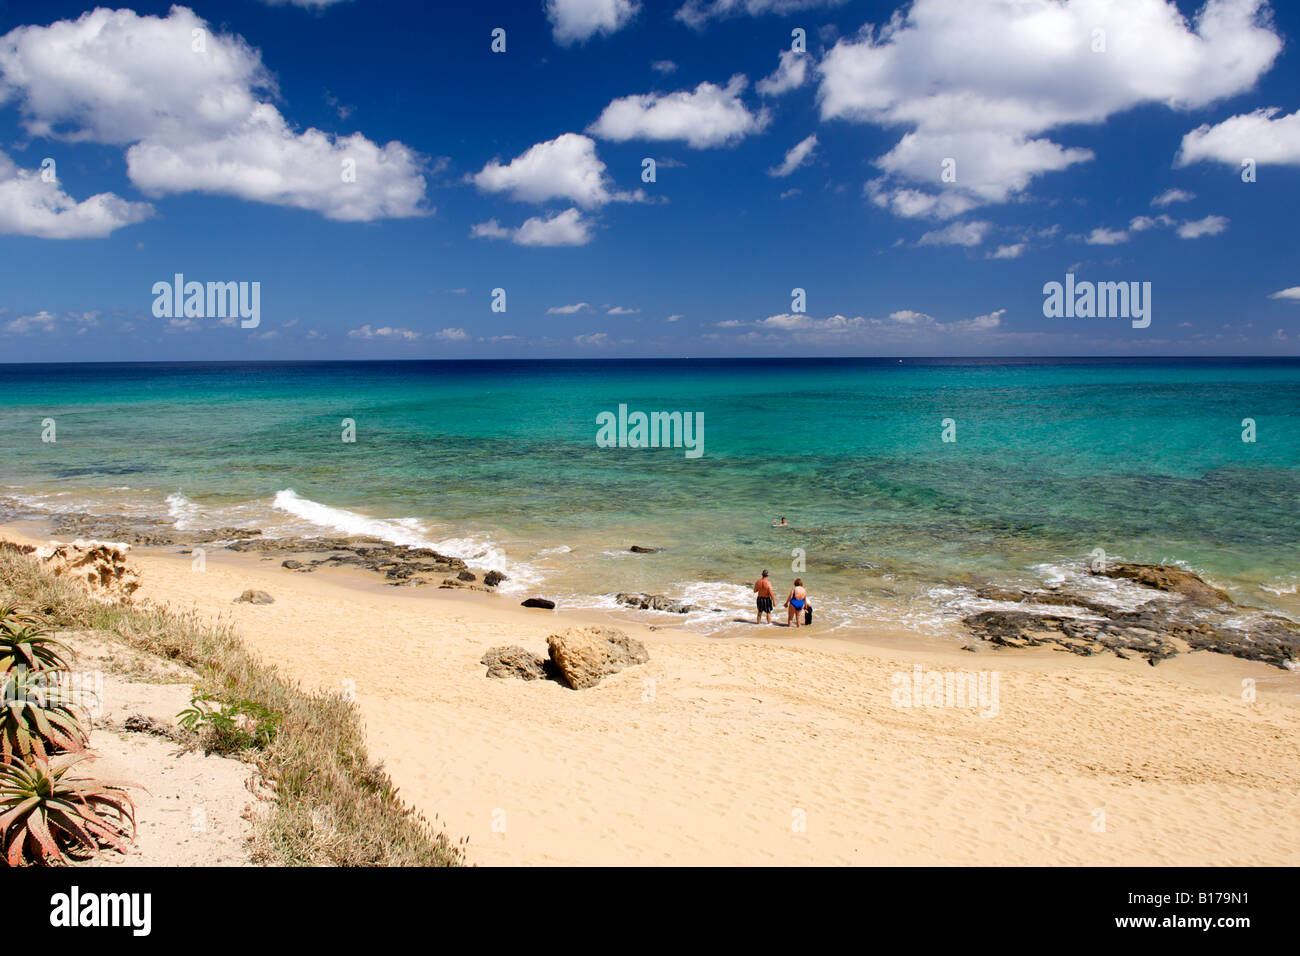 The beach at Ponta da Calheta on the Portuguese Atlantic island of Porto Santo. - Stock Image